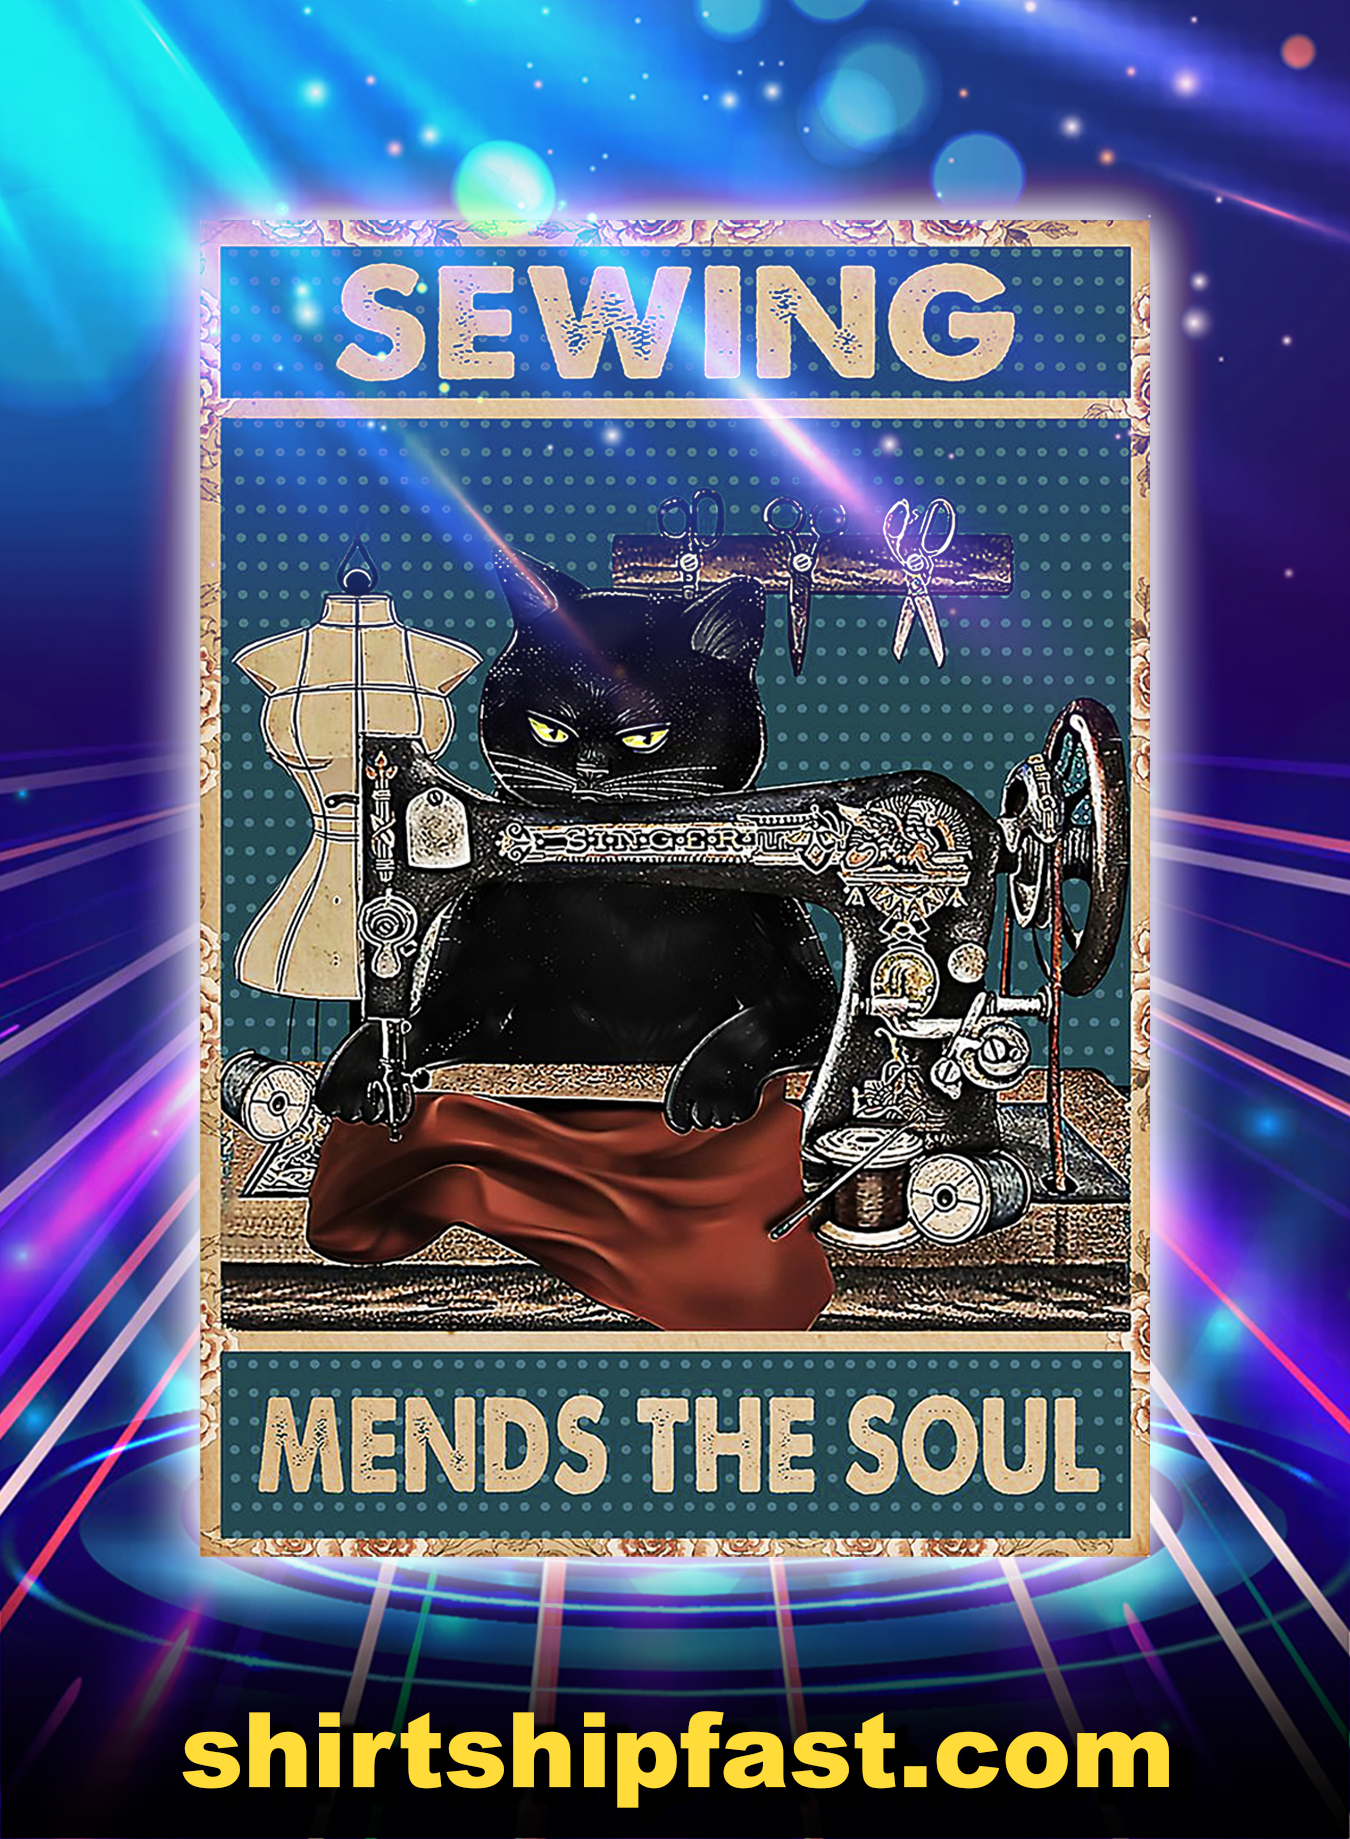 Cat sewing mends the soul poster - A2